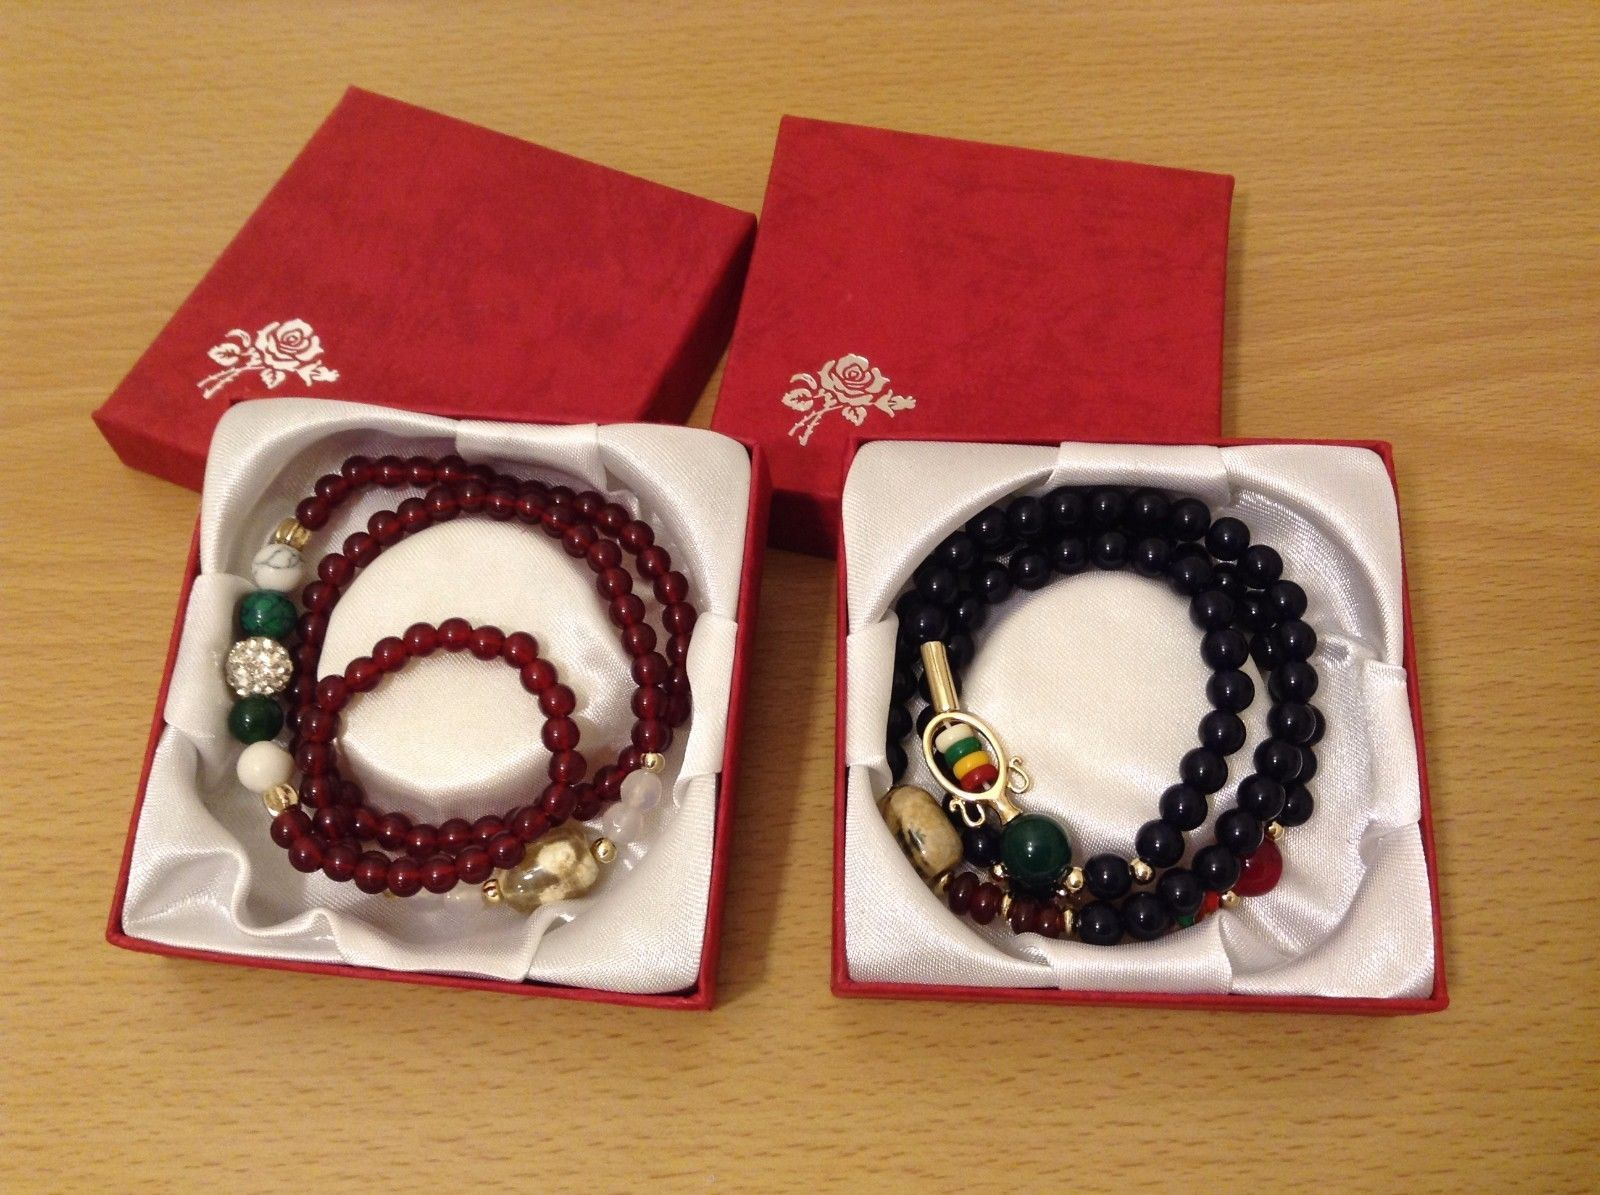 New In Gift Boxes MAD 3 Wrap 2 Bracelets Simulated Garnet Color Navy Blue Beads